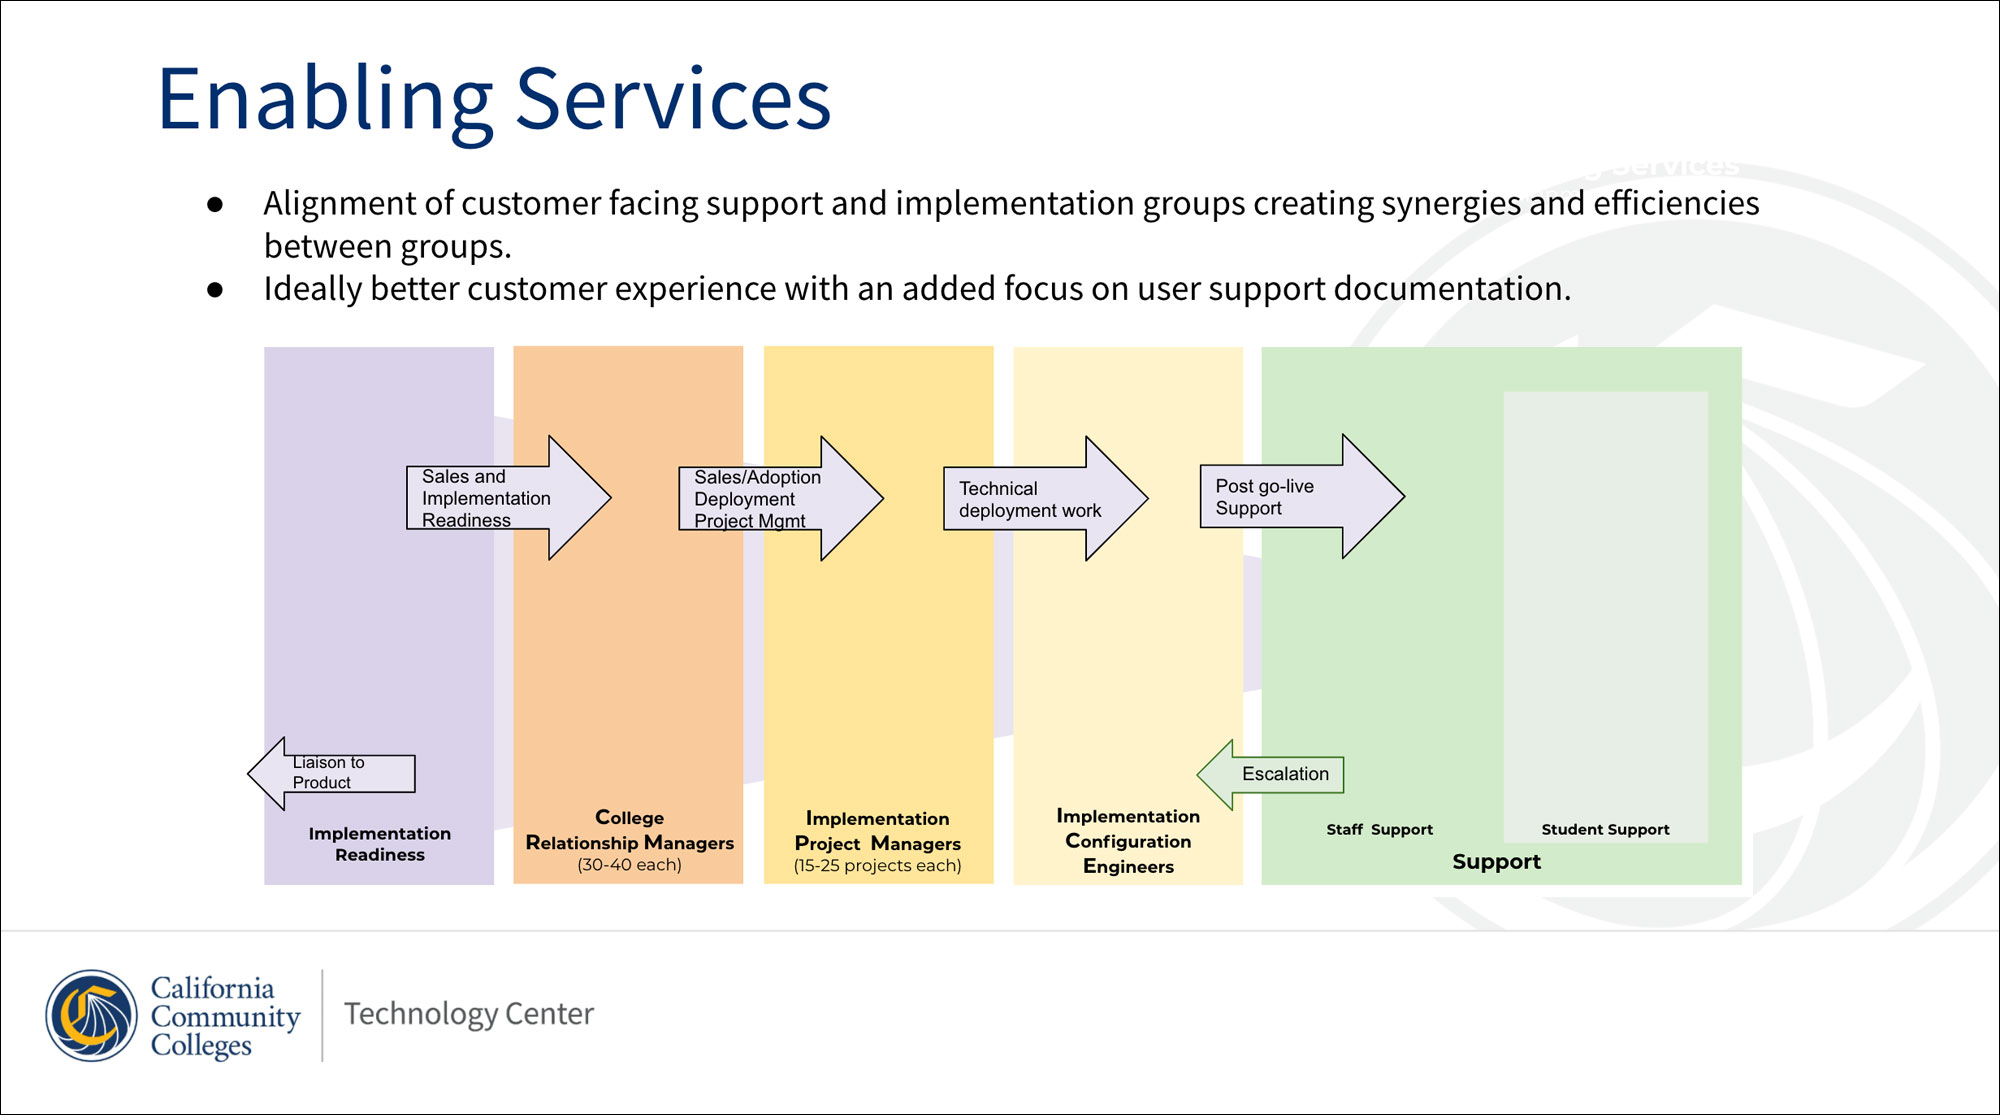 Enabling Services functions effective July2020